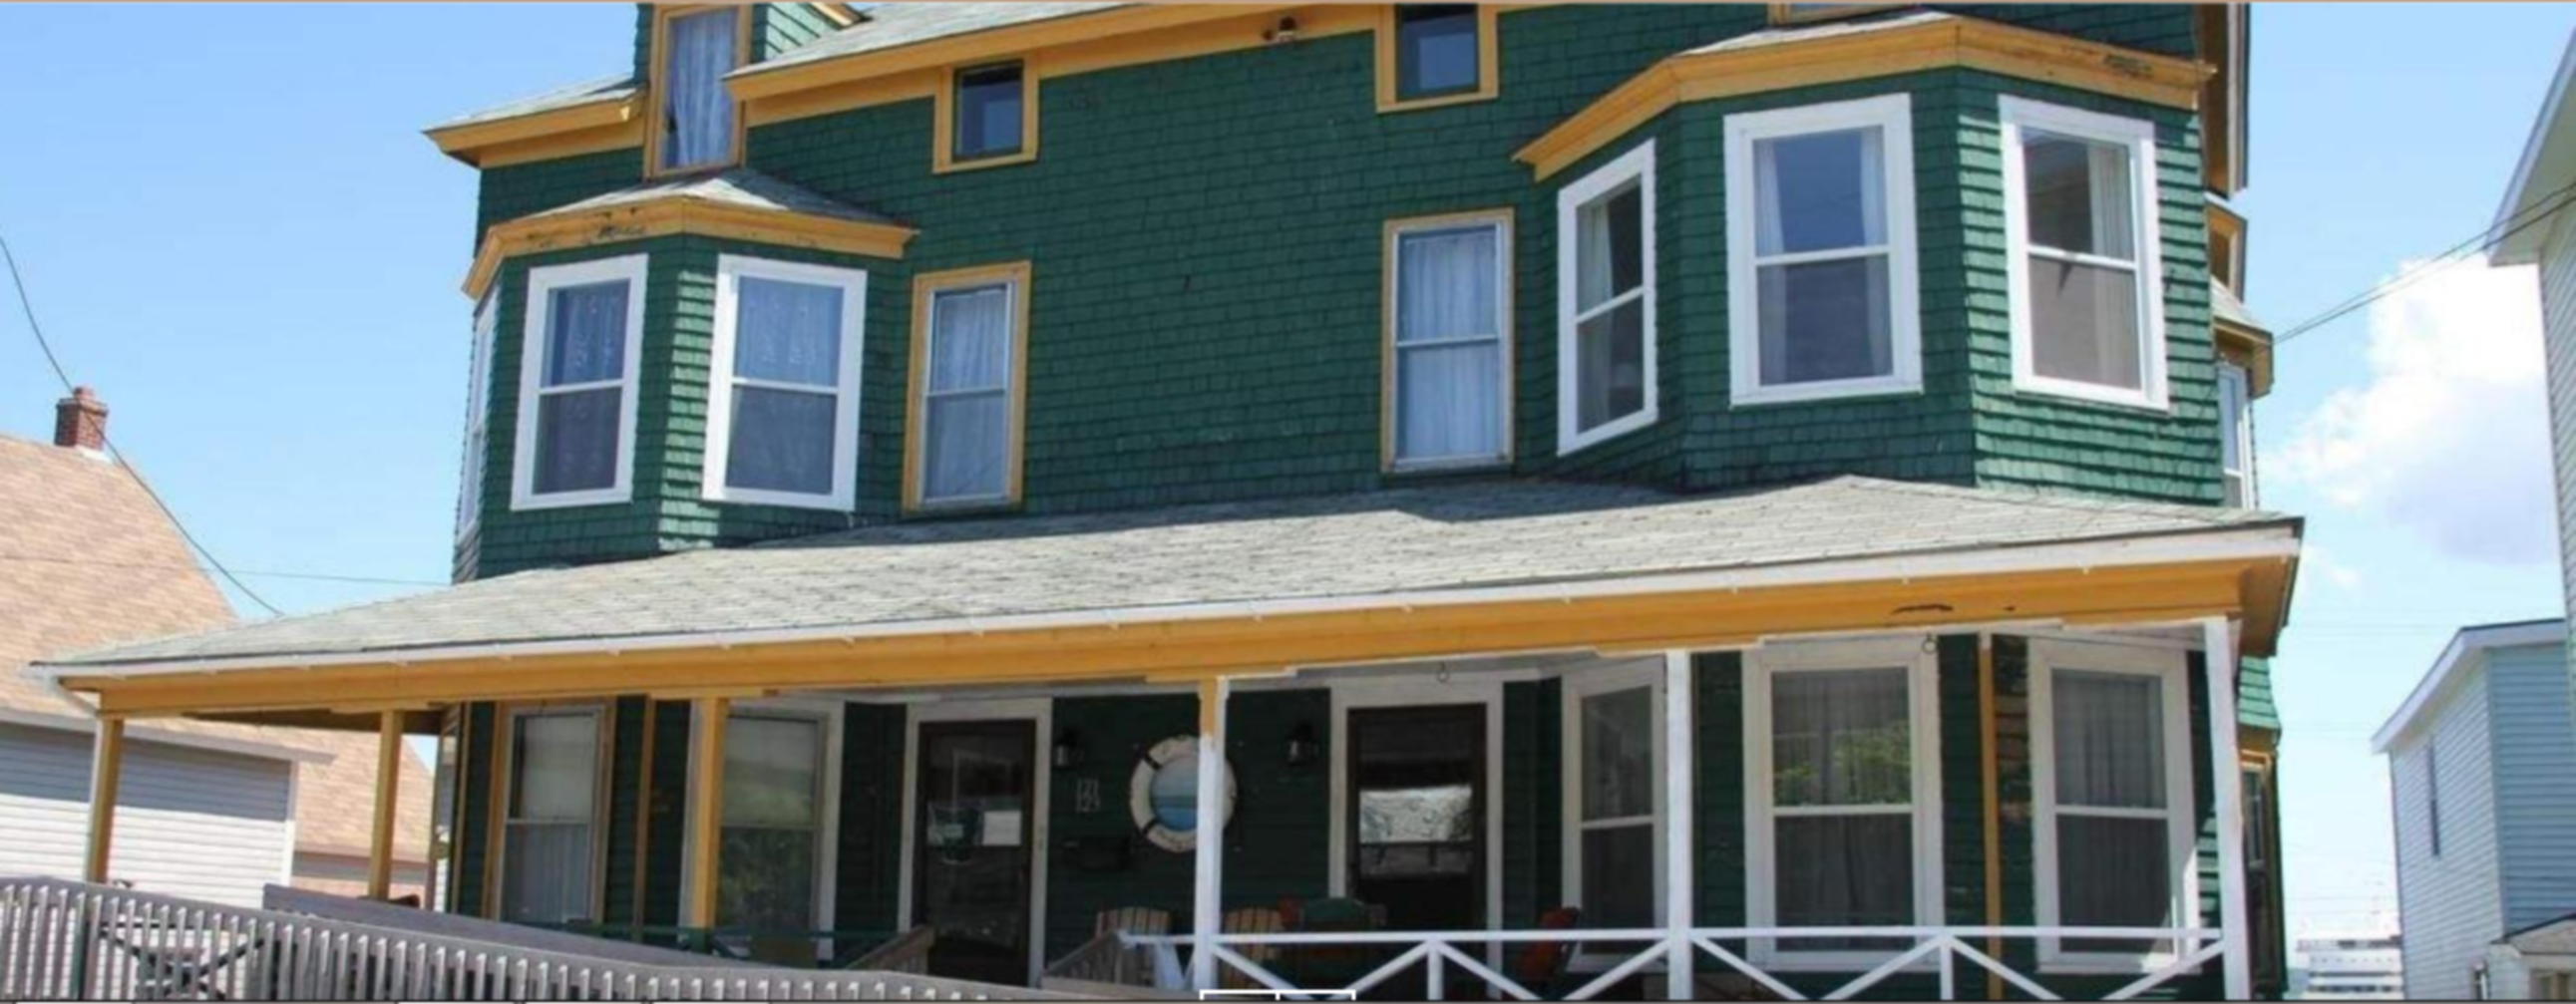 A house with a large window at At The Harbourfront B & B Inn.